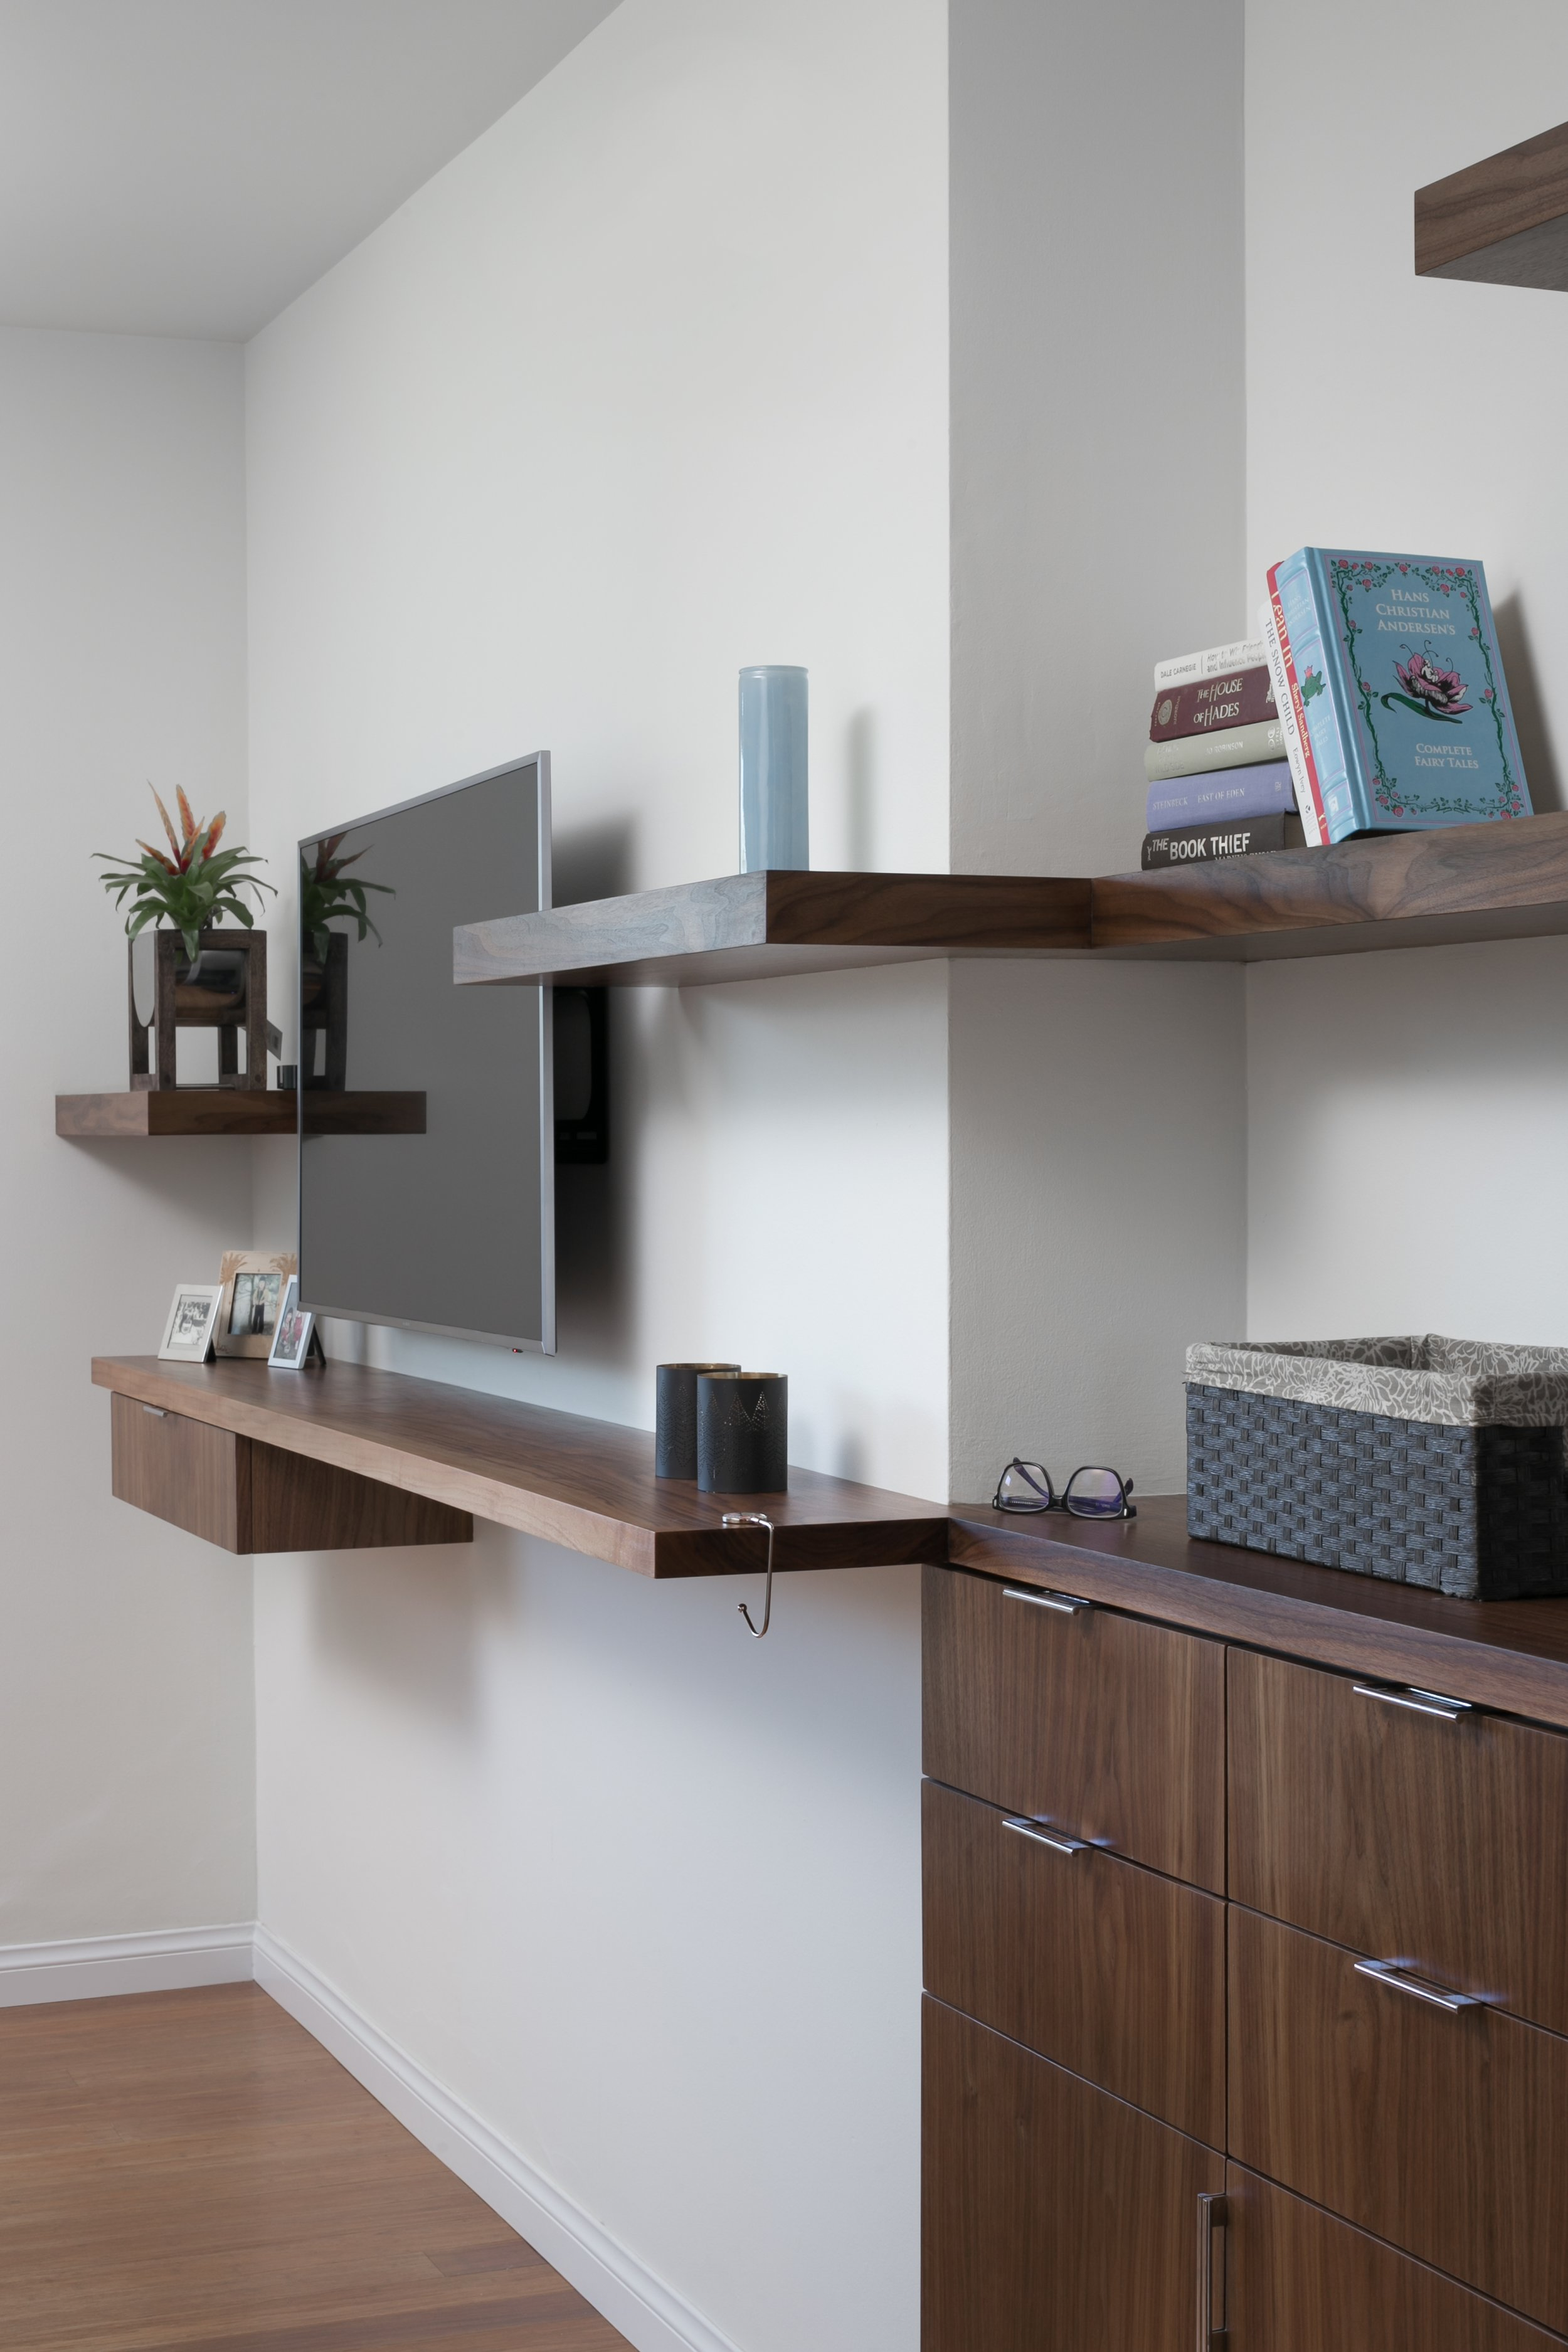 Walnut cabinet and floating shelves: a modern and minimalist approach